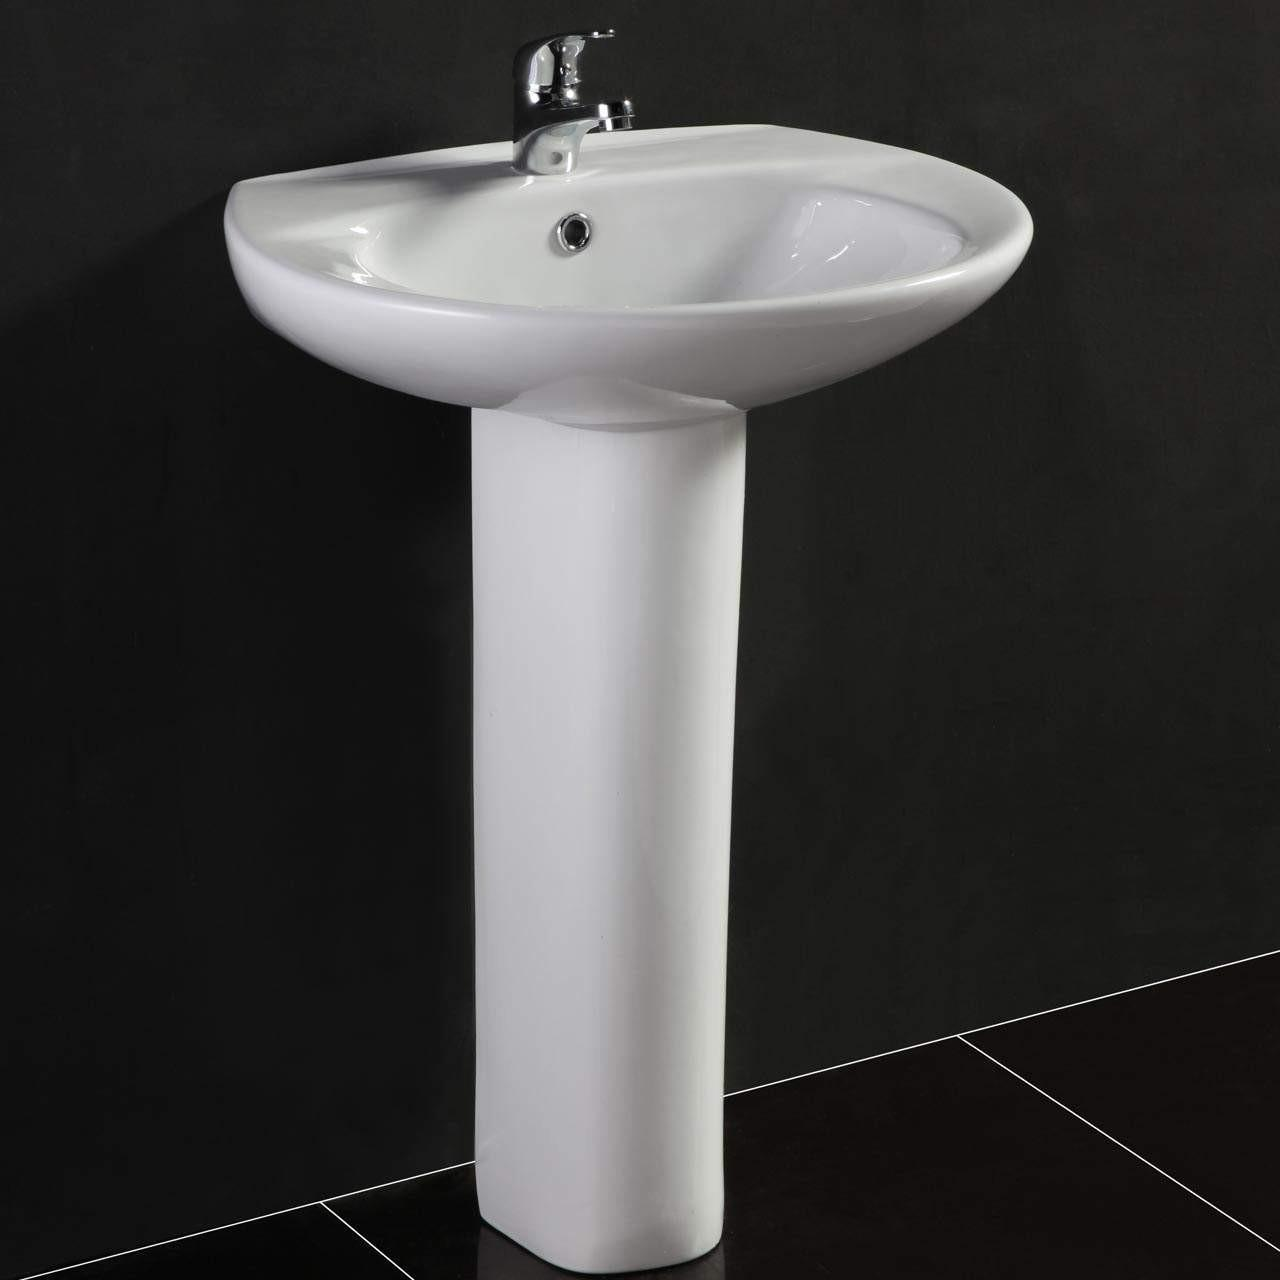 D203 Bathroom sanitary ware wash basin bathroom washbasins hand basins ...